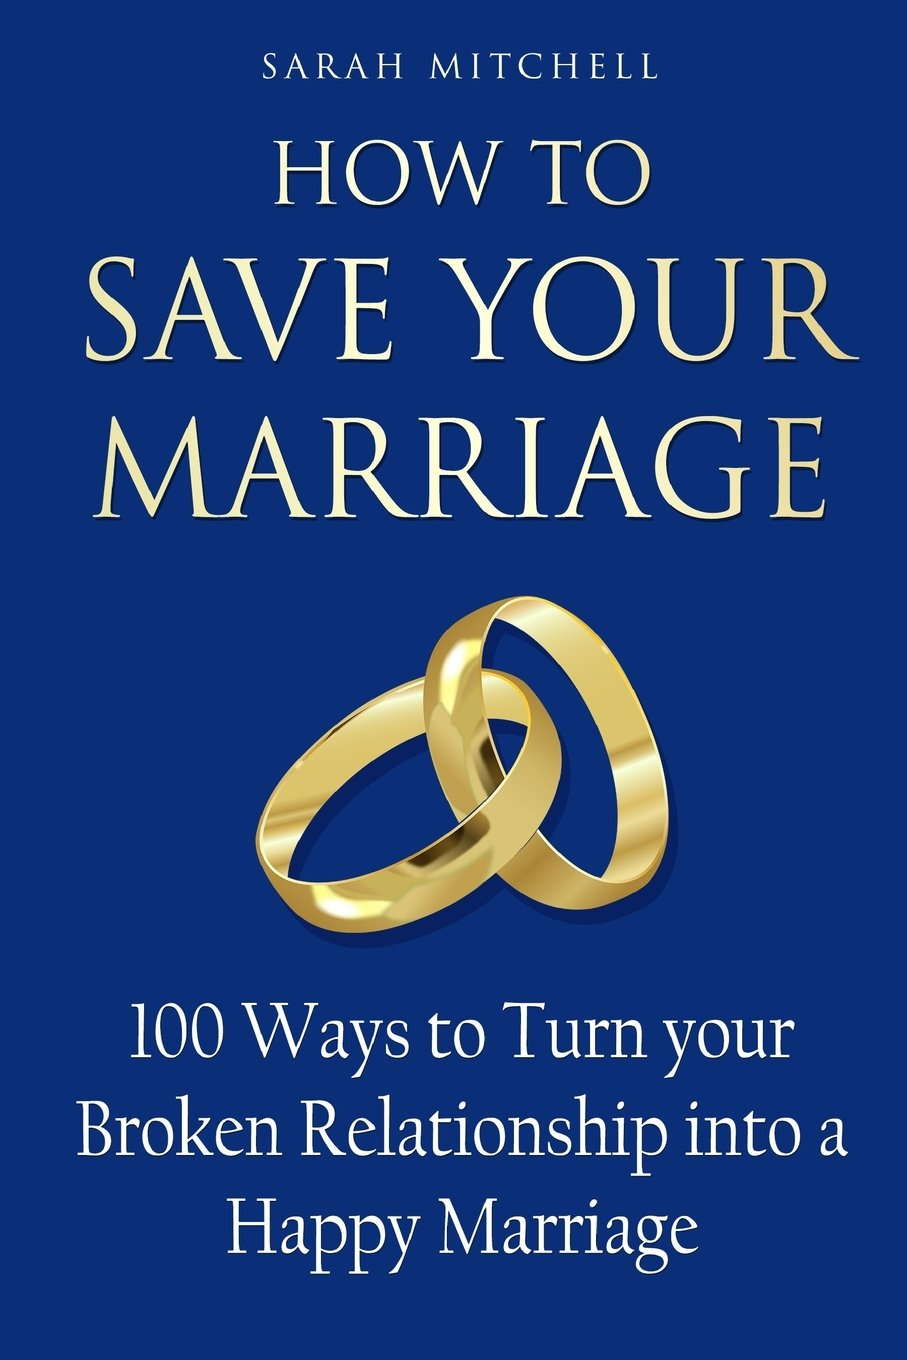 How to Save Your Marriage: 100 Ways to Turn your Broken Relationship into a Happy Marriage PDF